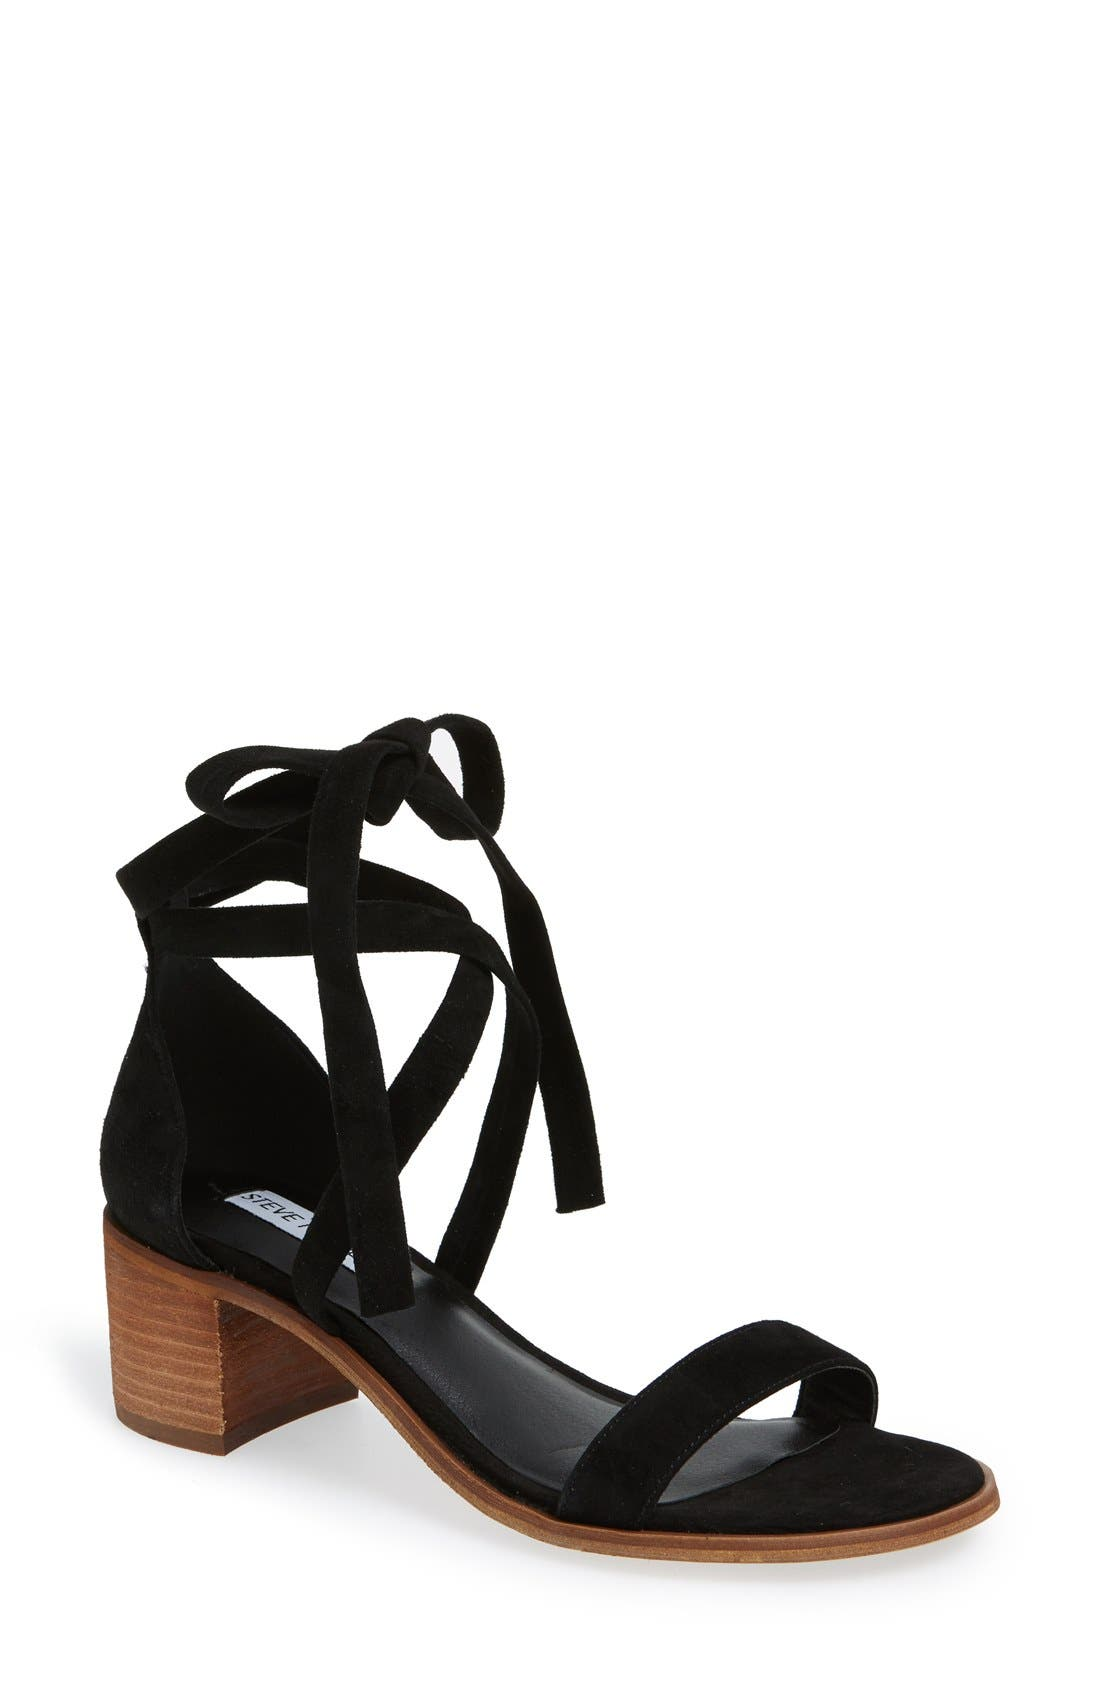 'Rizzaa' Ankle Strap Sandal,                         Main,                         color, Black Suede